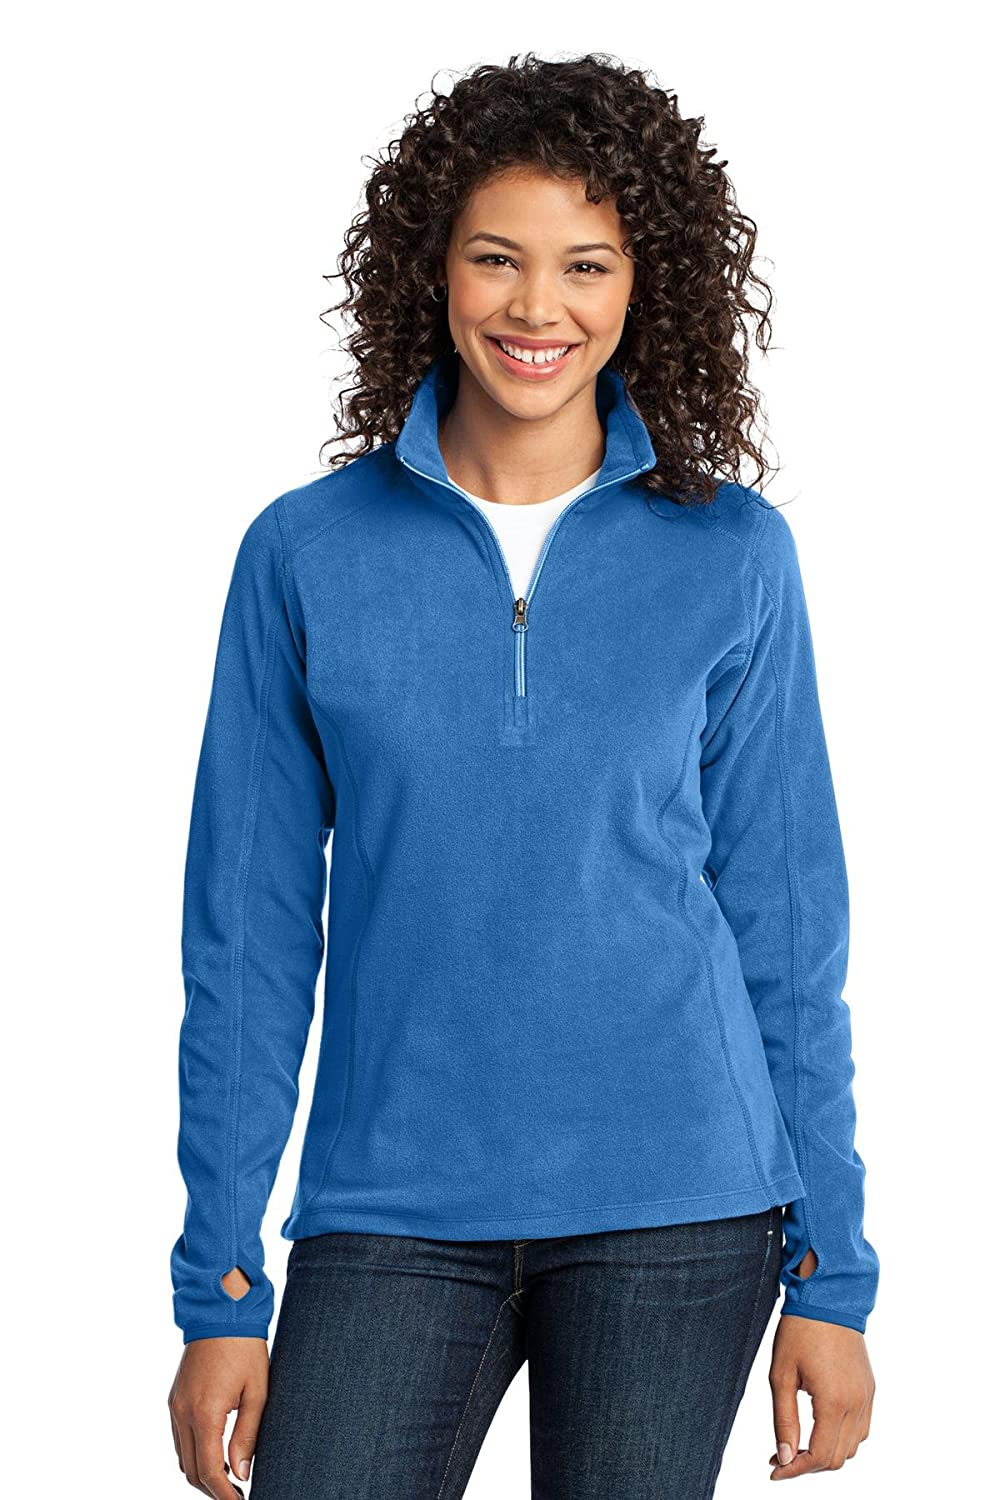 Port Authority Women's Microfleece 1/2 Zip Pullover